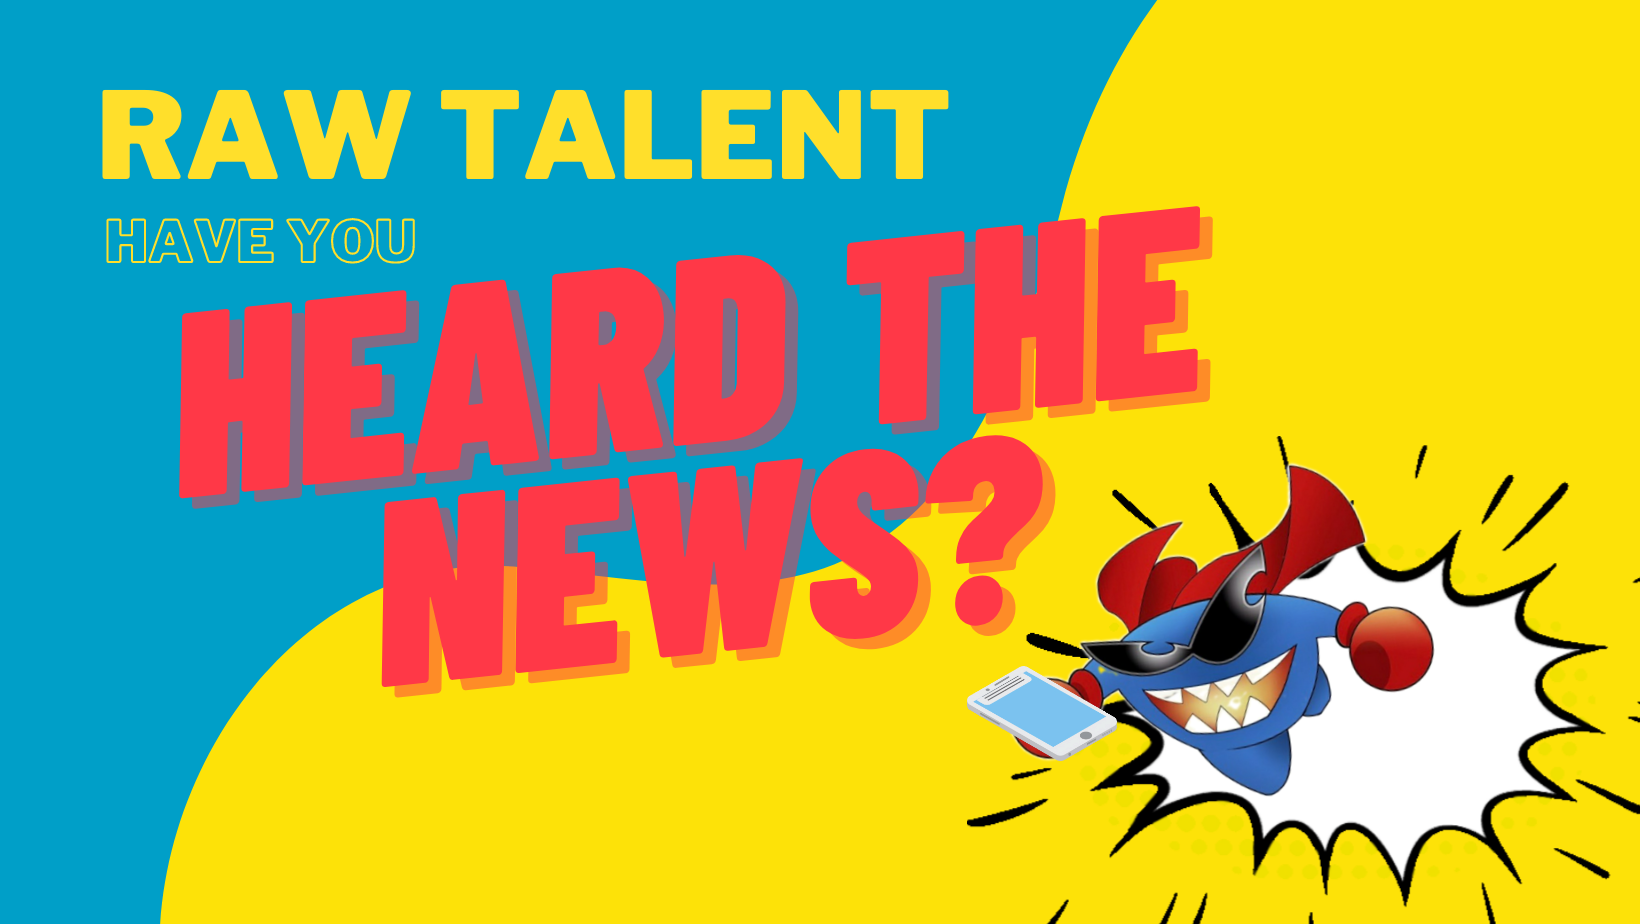 Raw Talent: the news